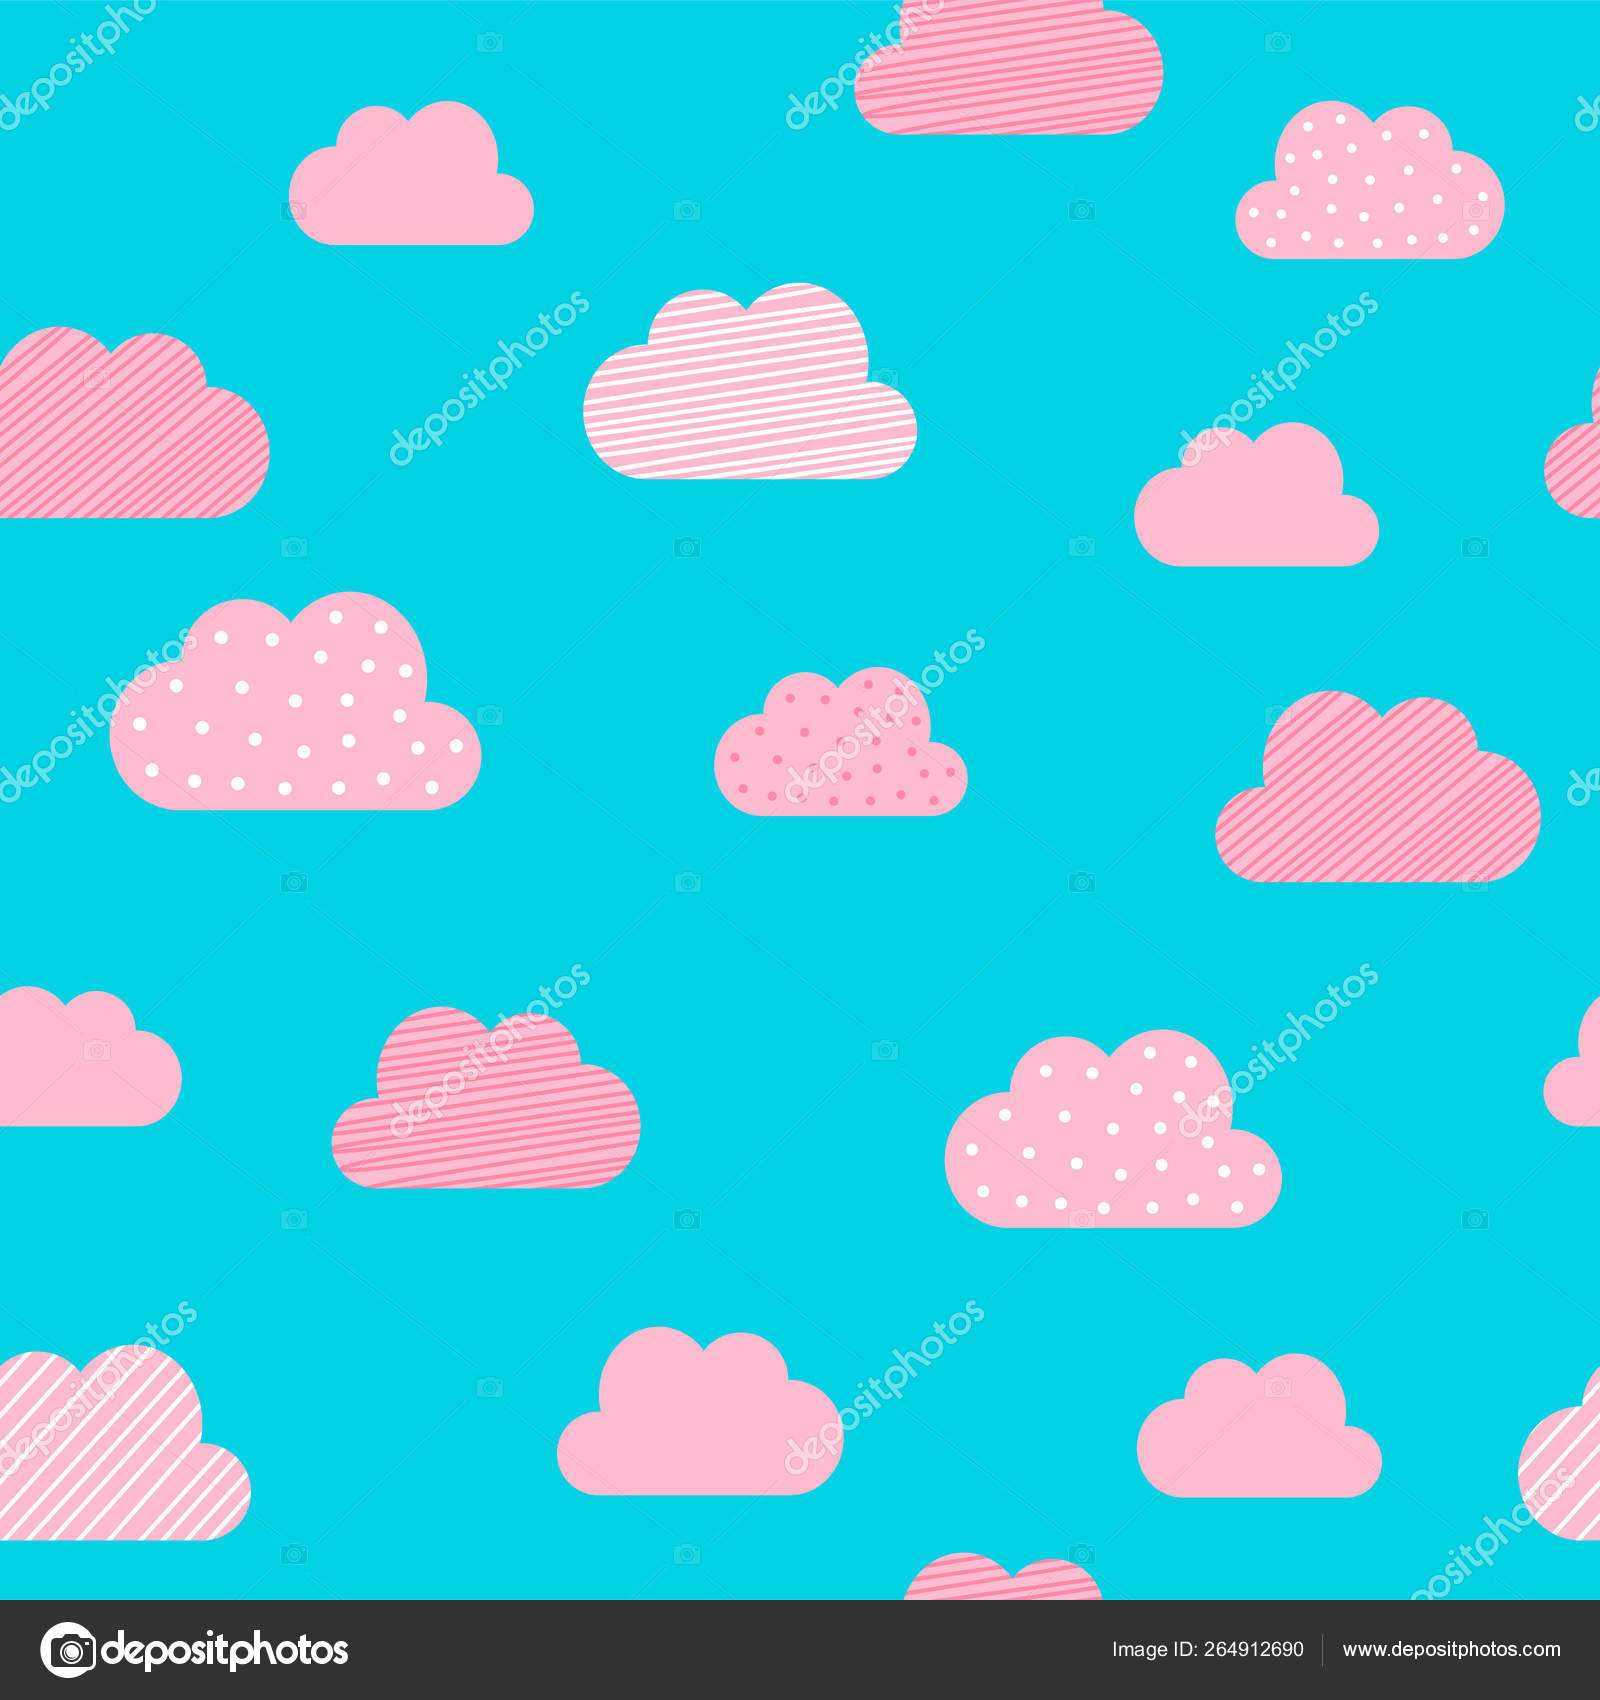 Cloud pattern background  Vector cartoon pink and blue